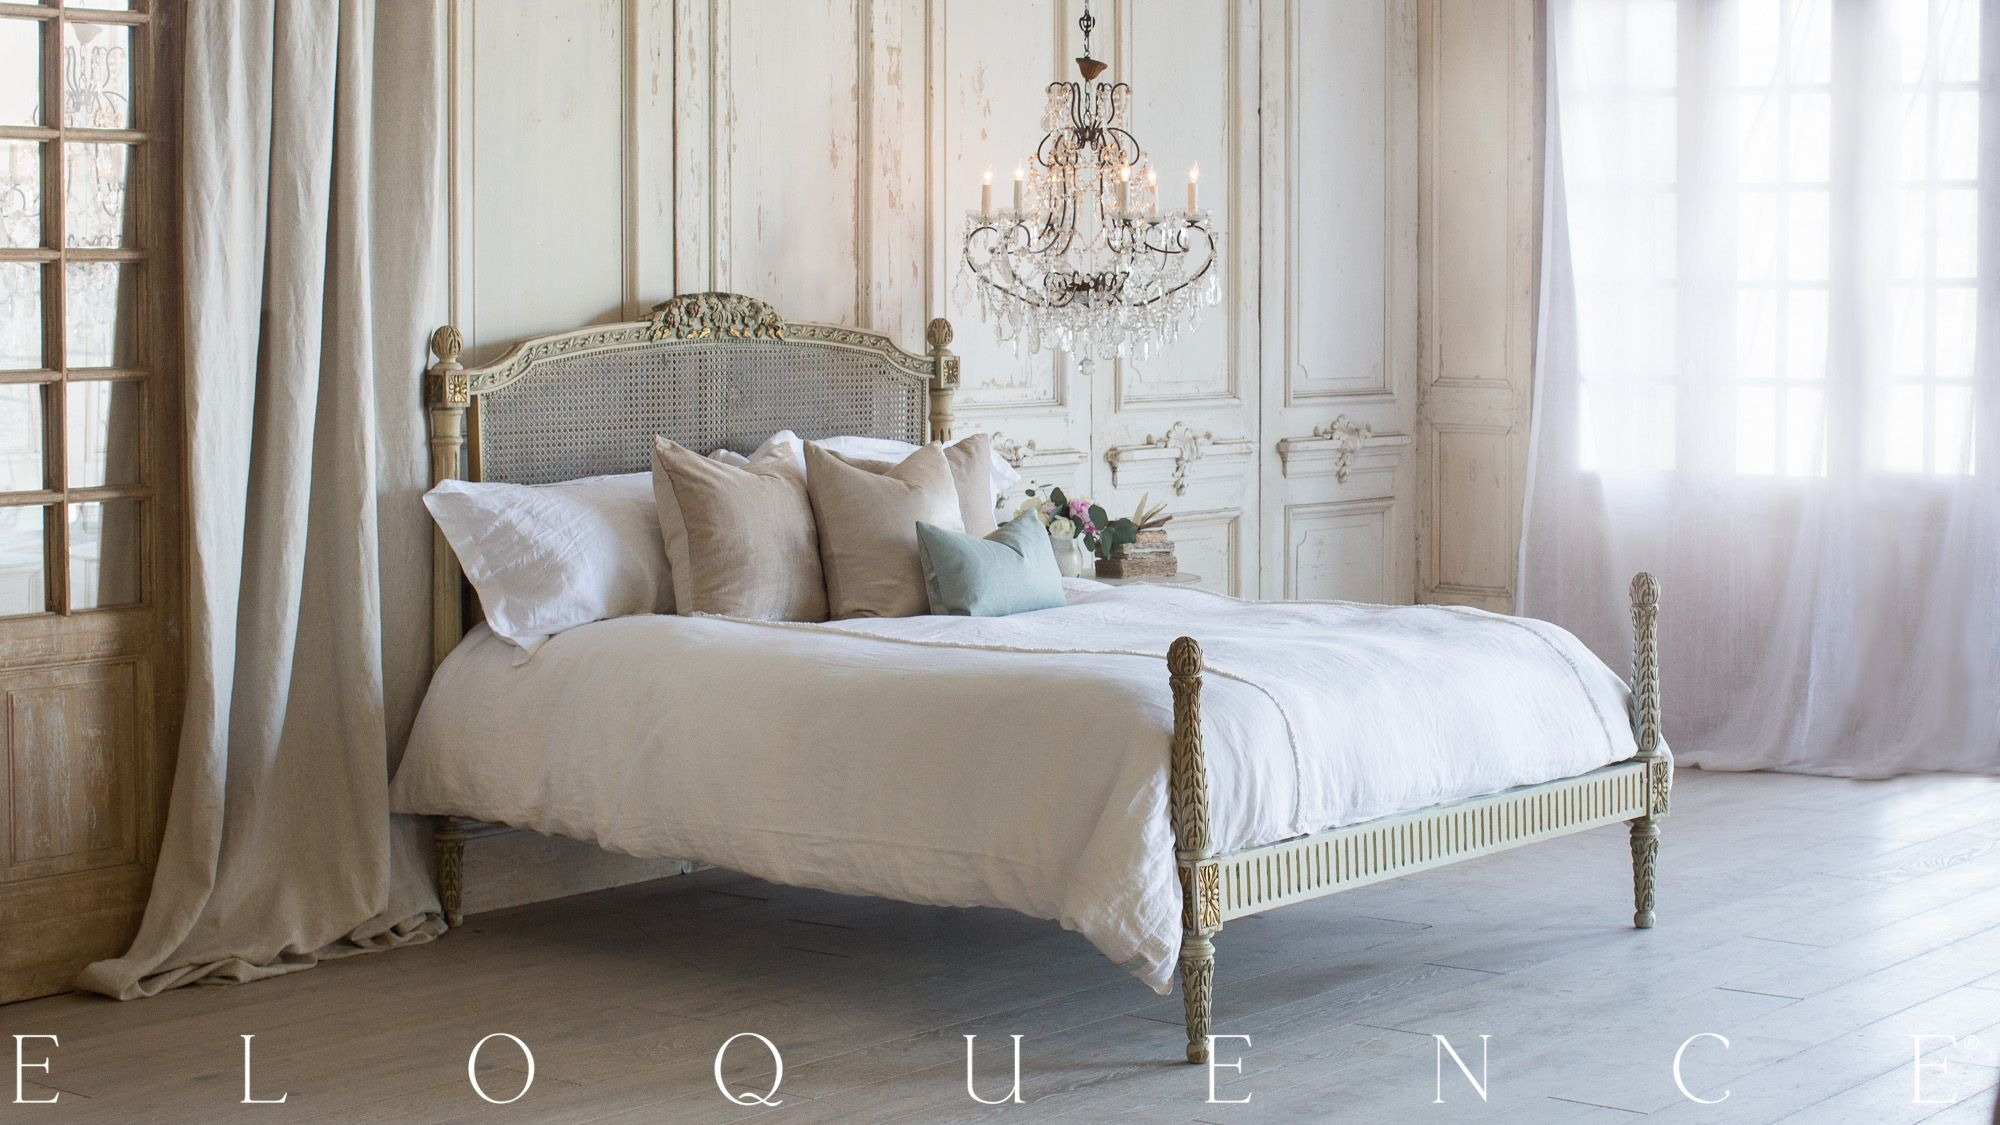 Eloquence, Inc Gorgeous Vintage Bed In A Pistachio With A